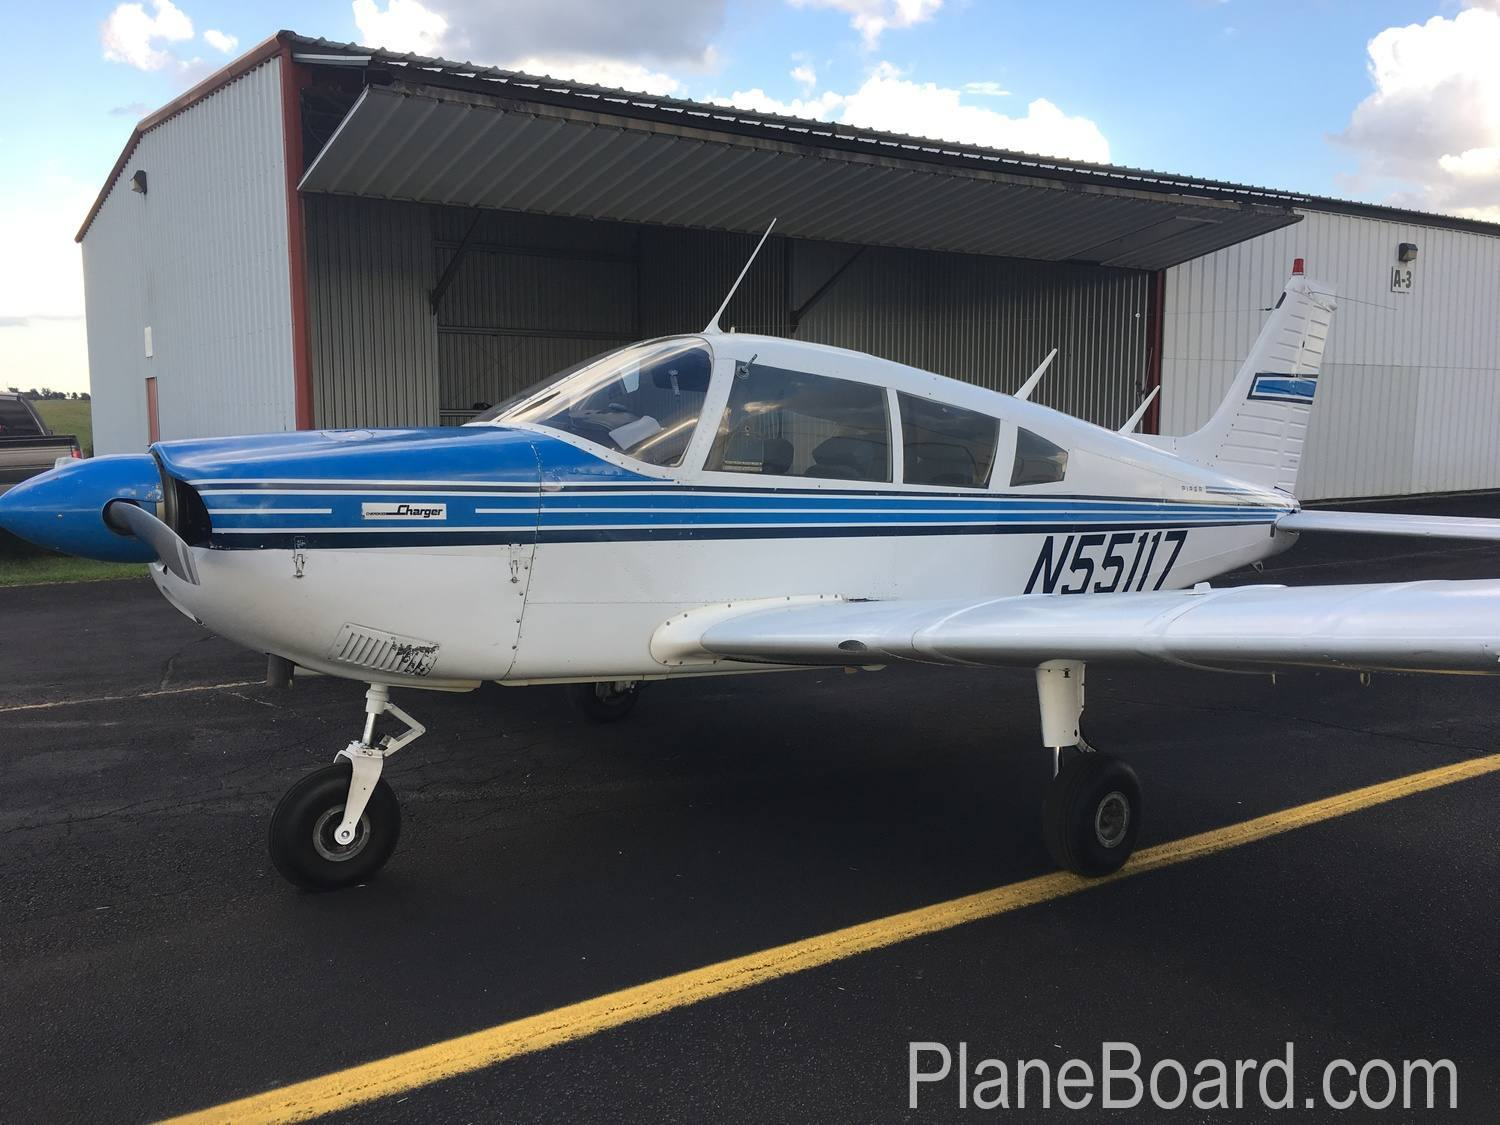 1973 Piper Charger 235 primary